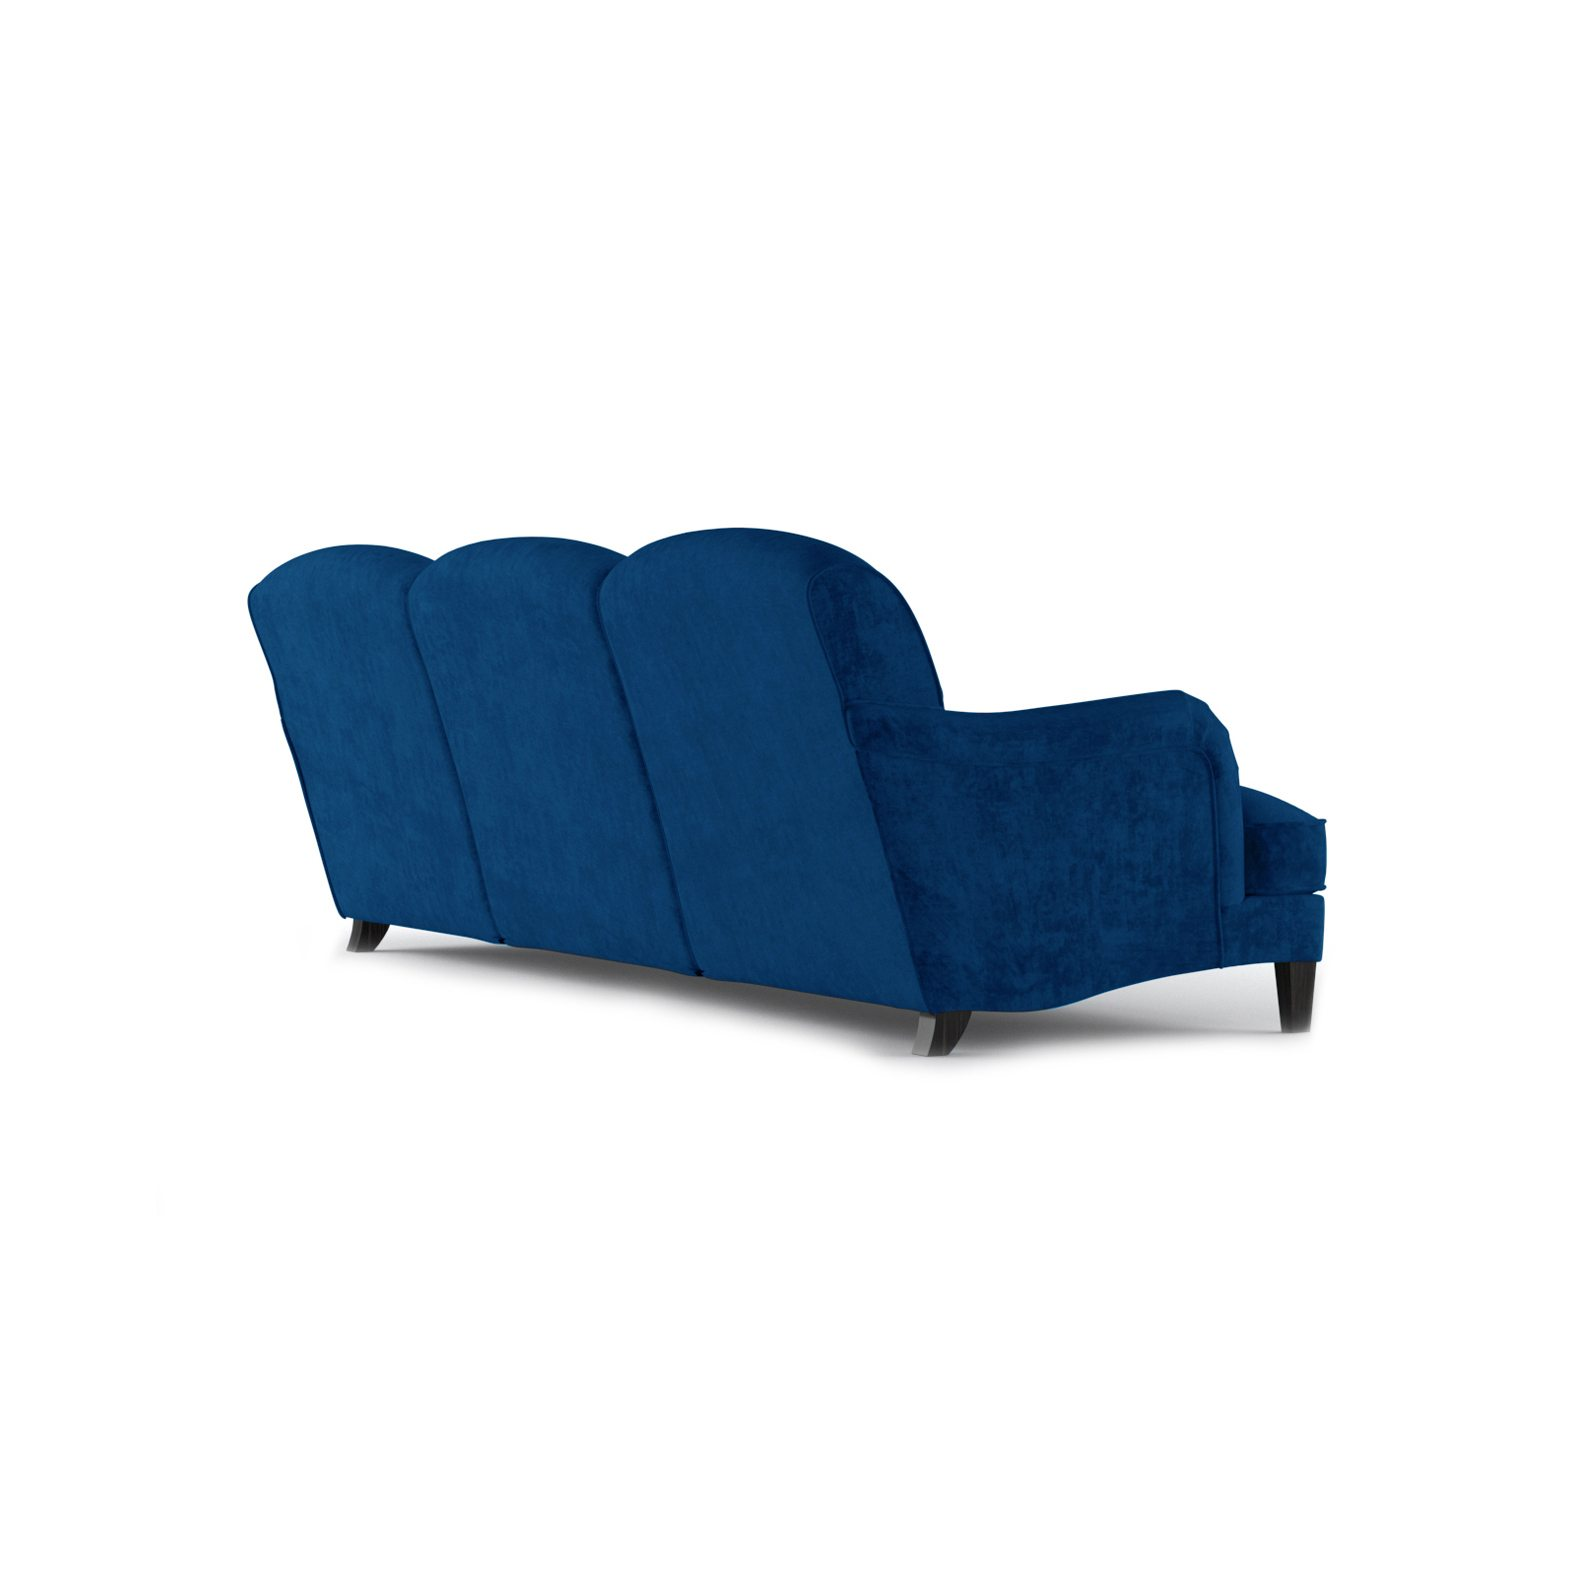 Windsor Three and a Half Seater Sofa by Bonham & Bonham Blue 09